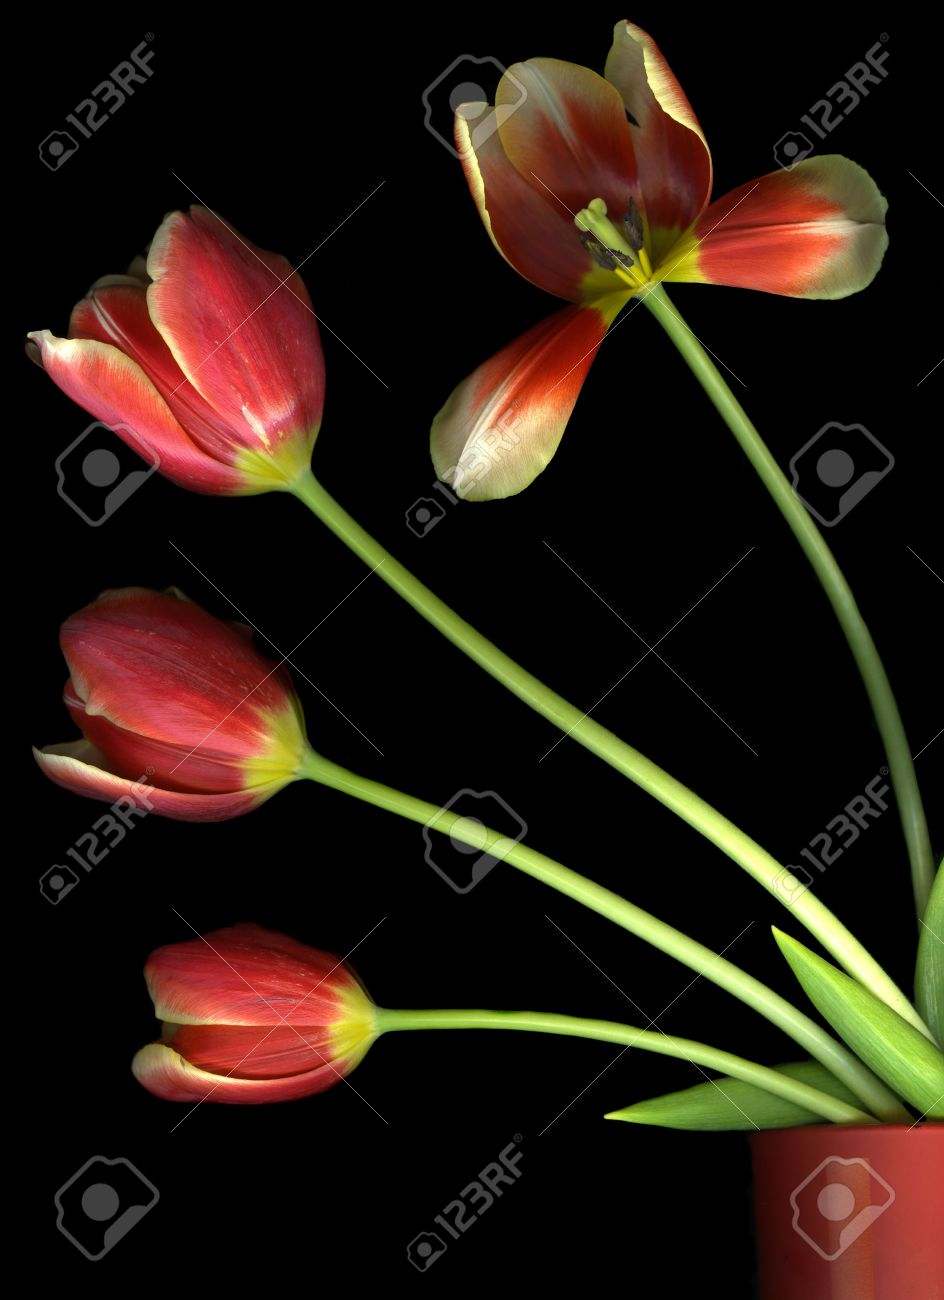 Vibrant red tulips in a flower pot isolated on black background Stock Photo - 5071583